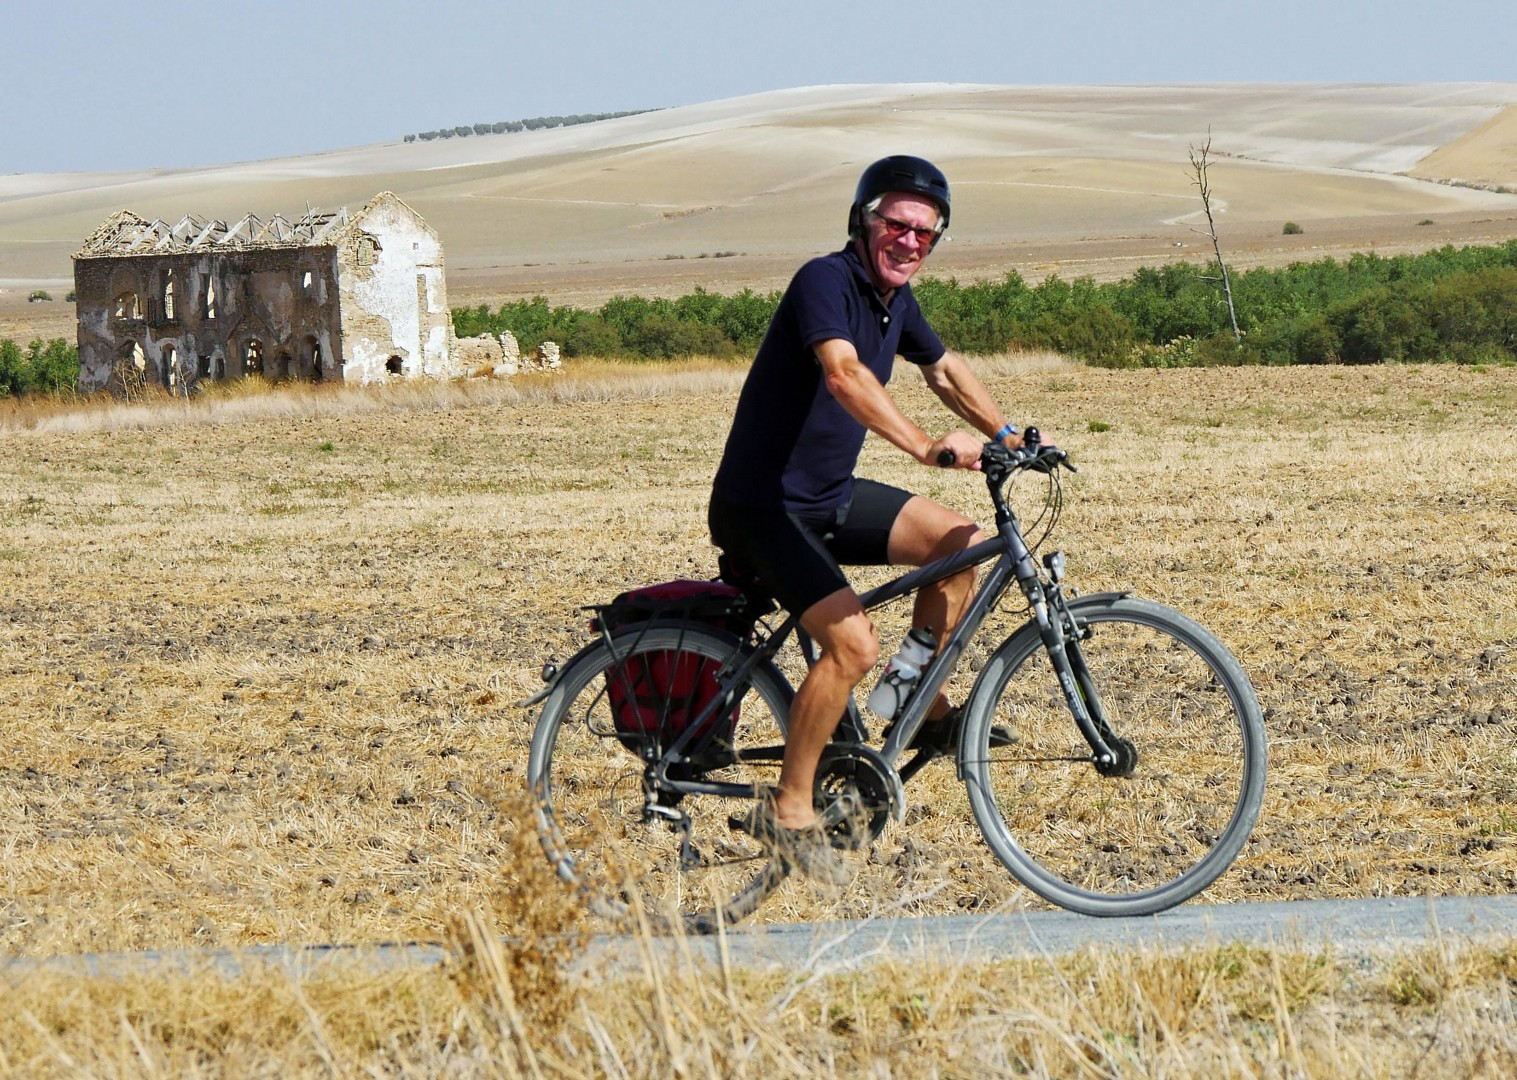 granada-self-guided-leisure-cycling-holiday.jpg - Southern Spain - Granada to Seville - Self-Guided Leisure Cycling Holiday - Leisure Cycling